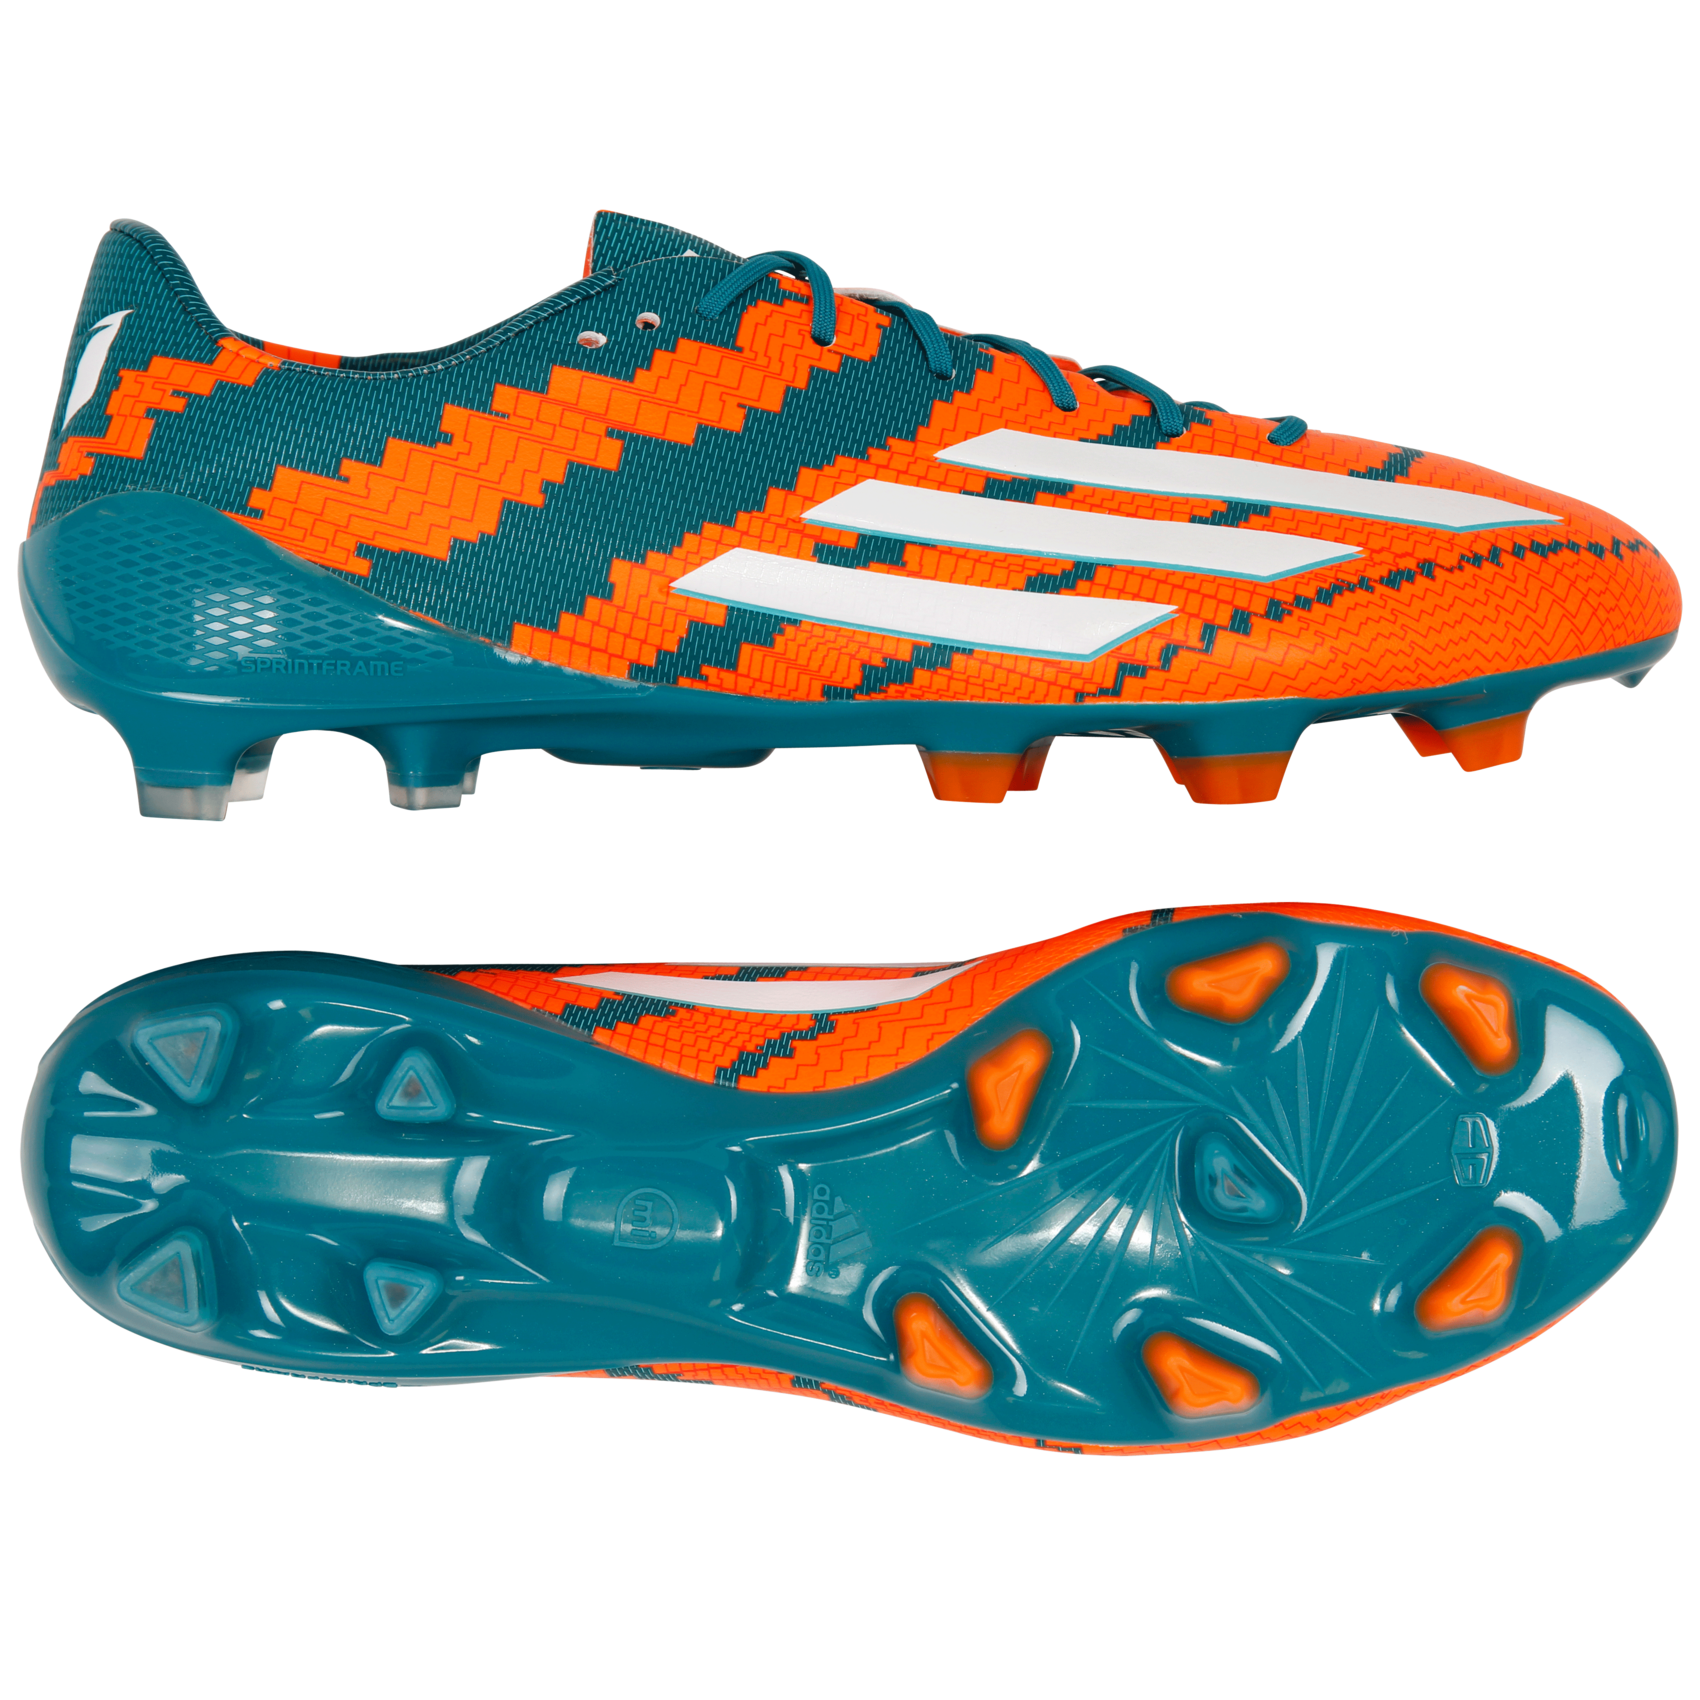 adidas - Messi 10.1 FG - Orange - Herre